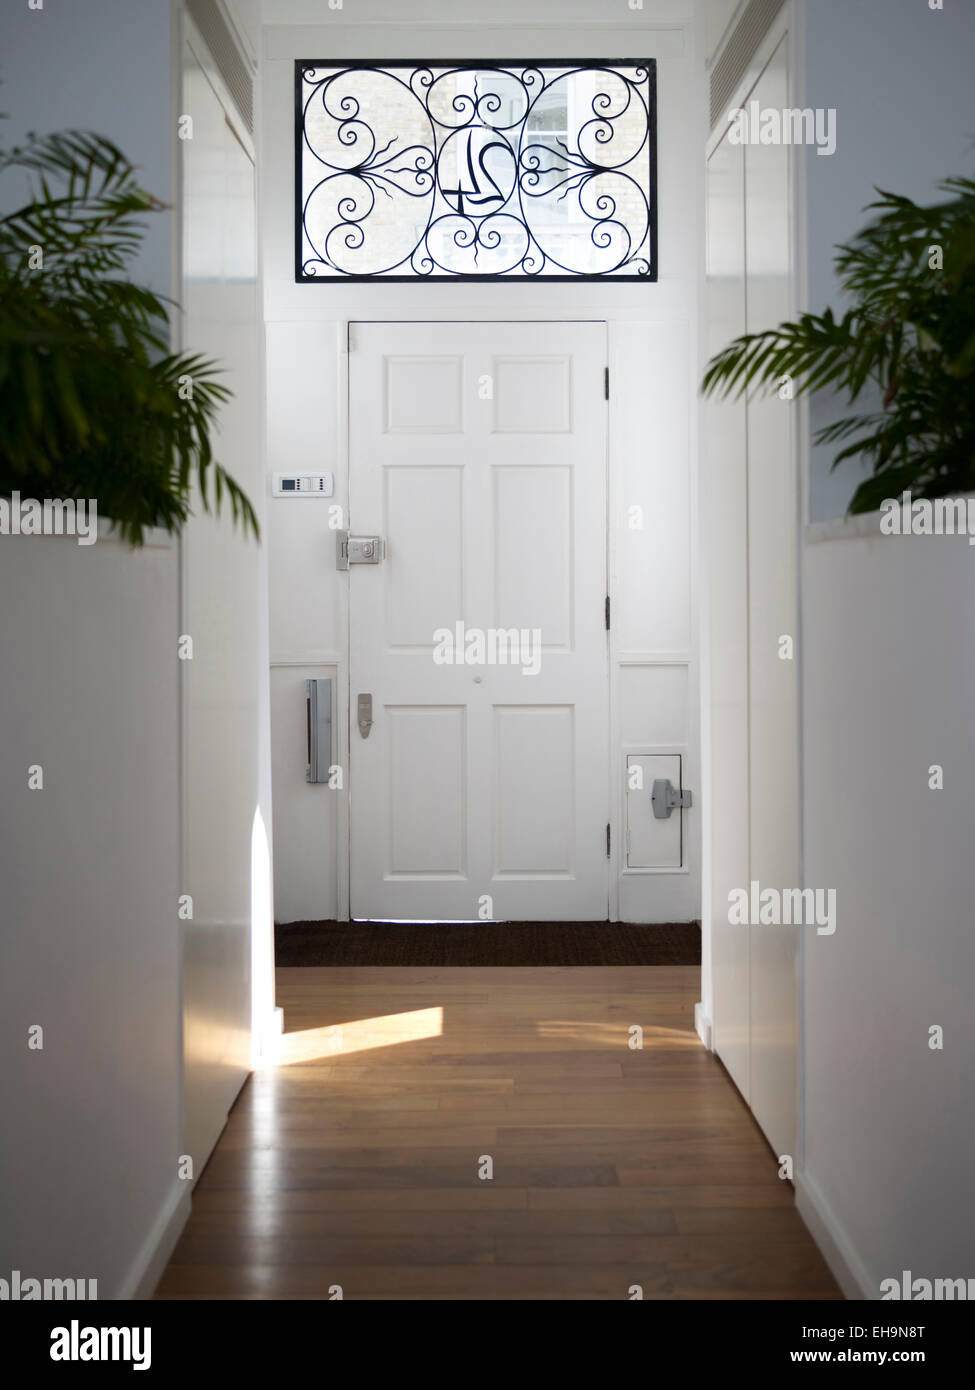 Attractive Hallway With Symmetrical Plants, Wooden Floor And Ornate House Number Window  Panel Above Front Door In Cumberland Street Home, UK